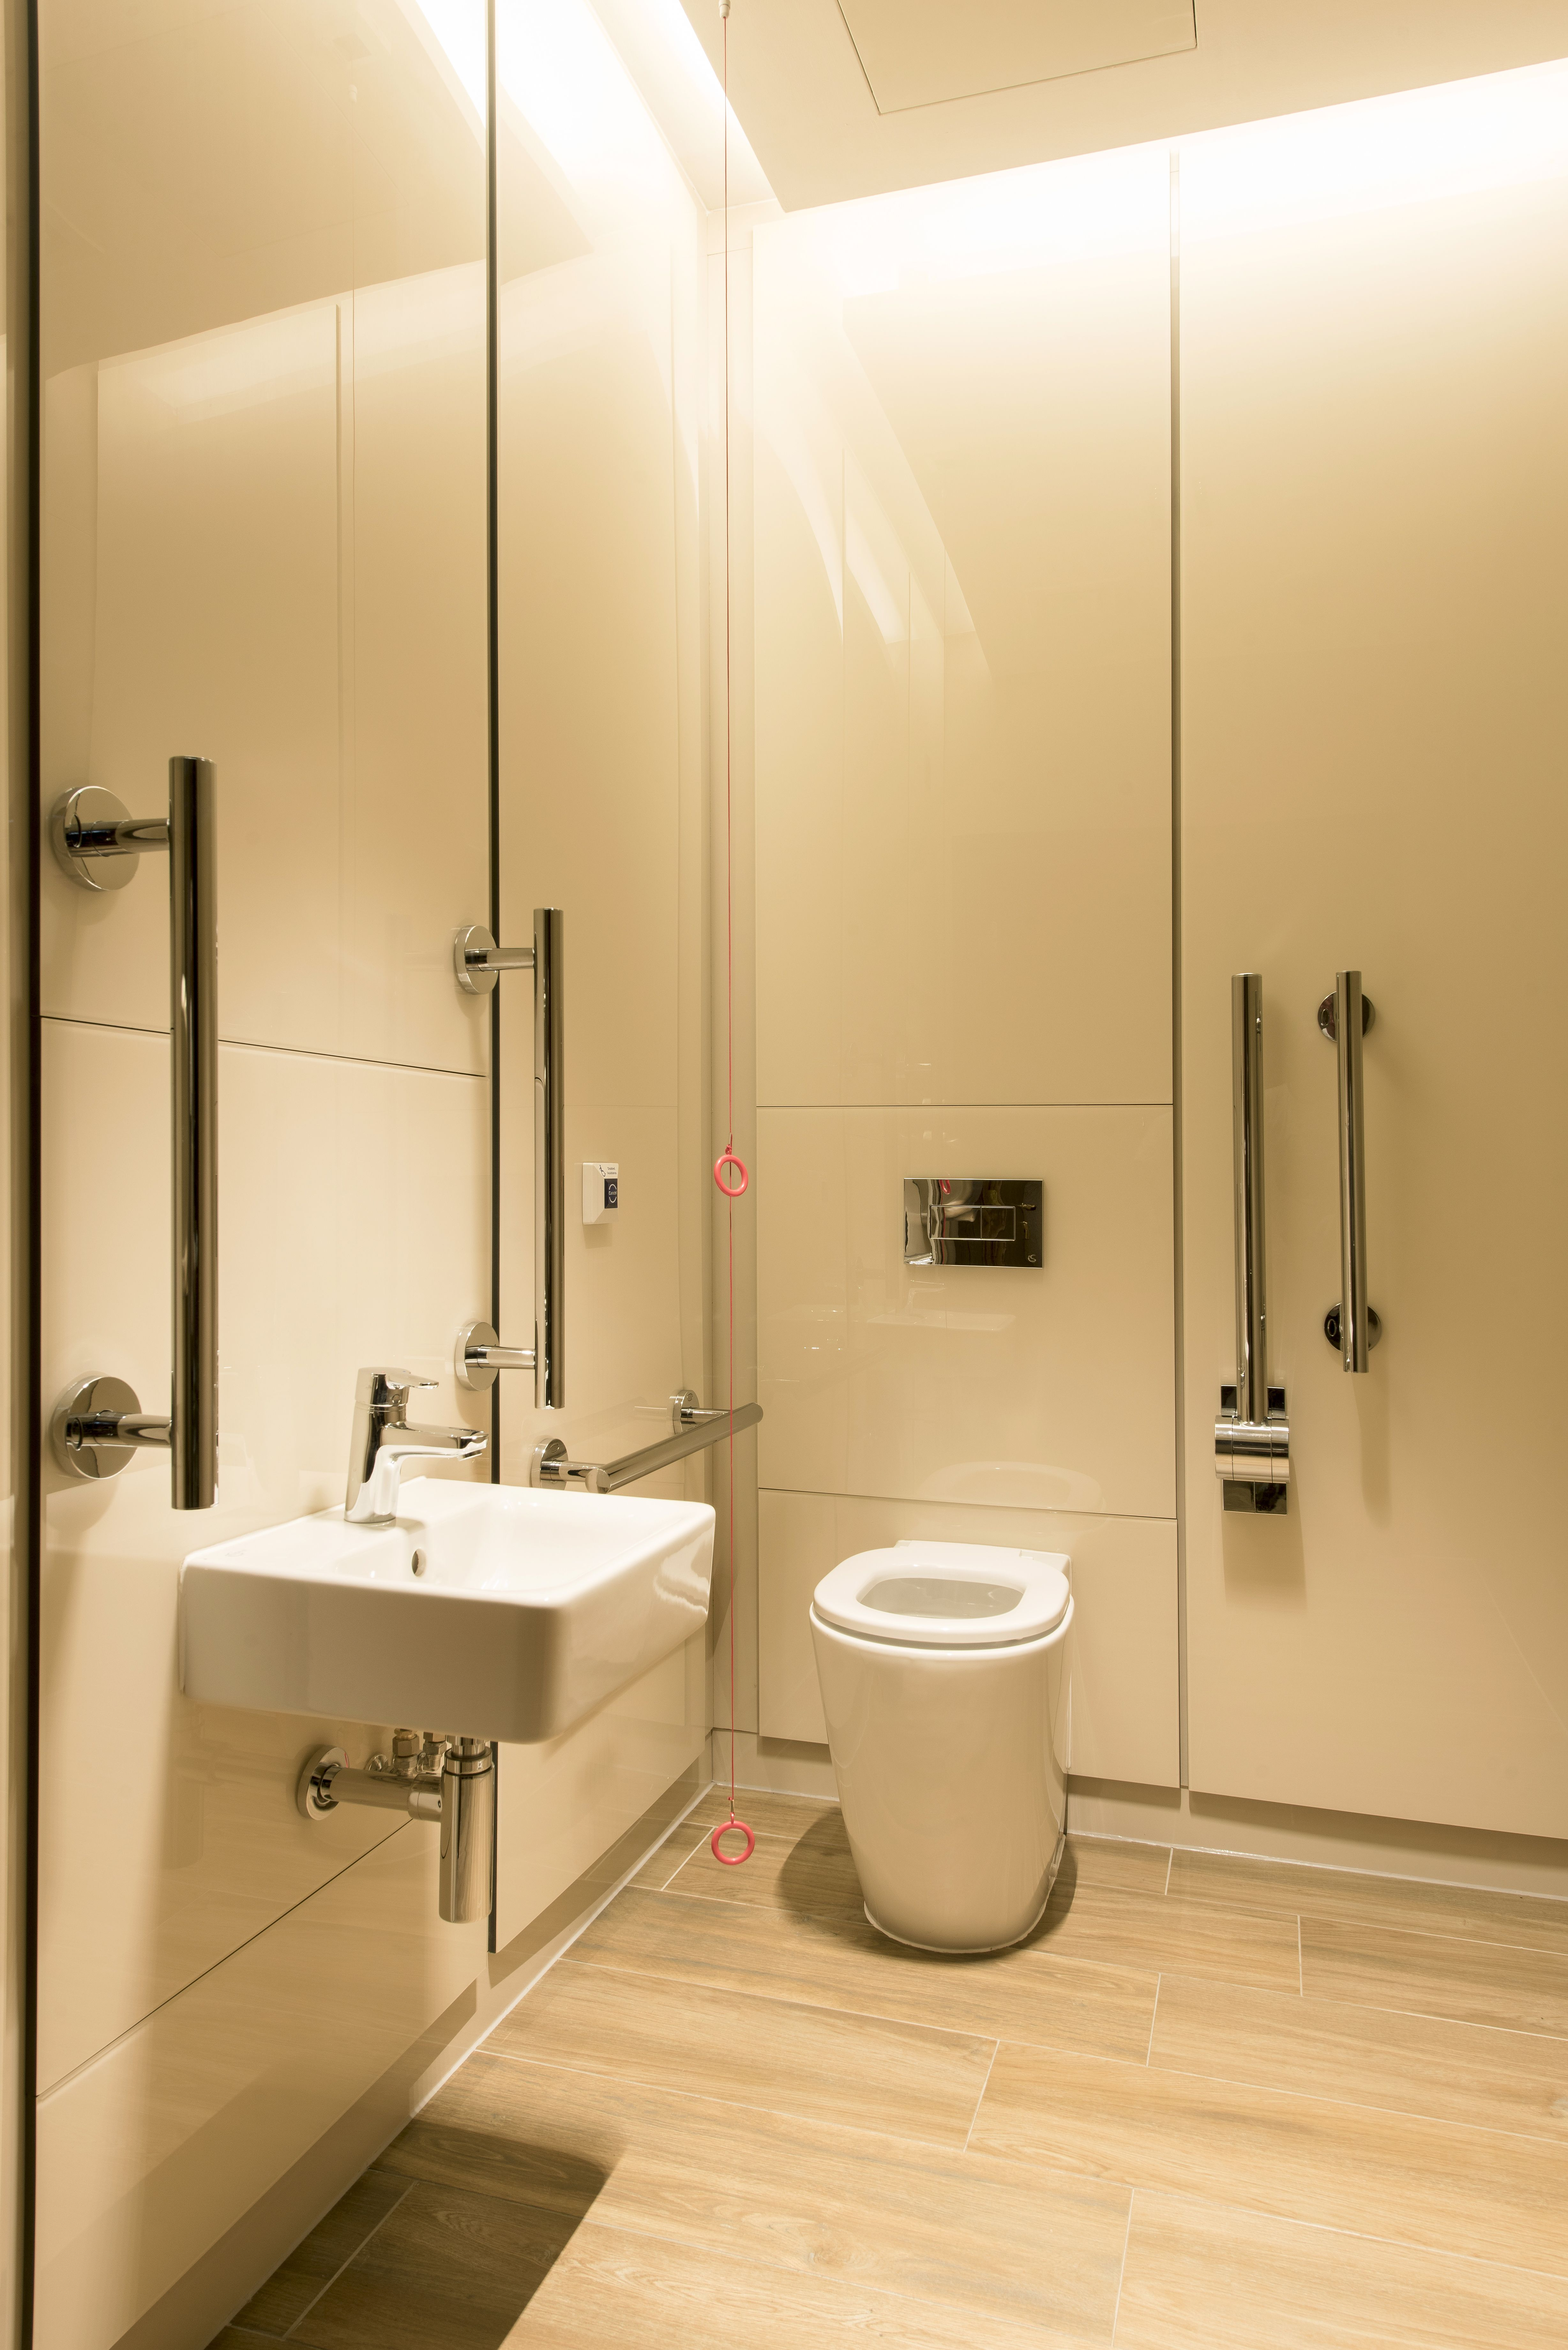 AC Hotels by Marriott - Petal Cubicle systems, Duct and Access